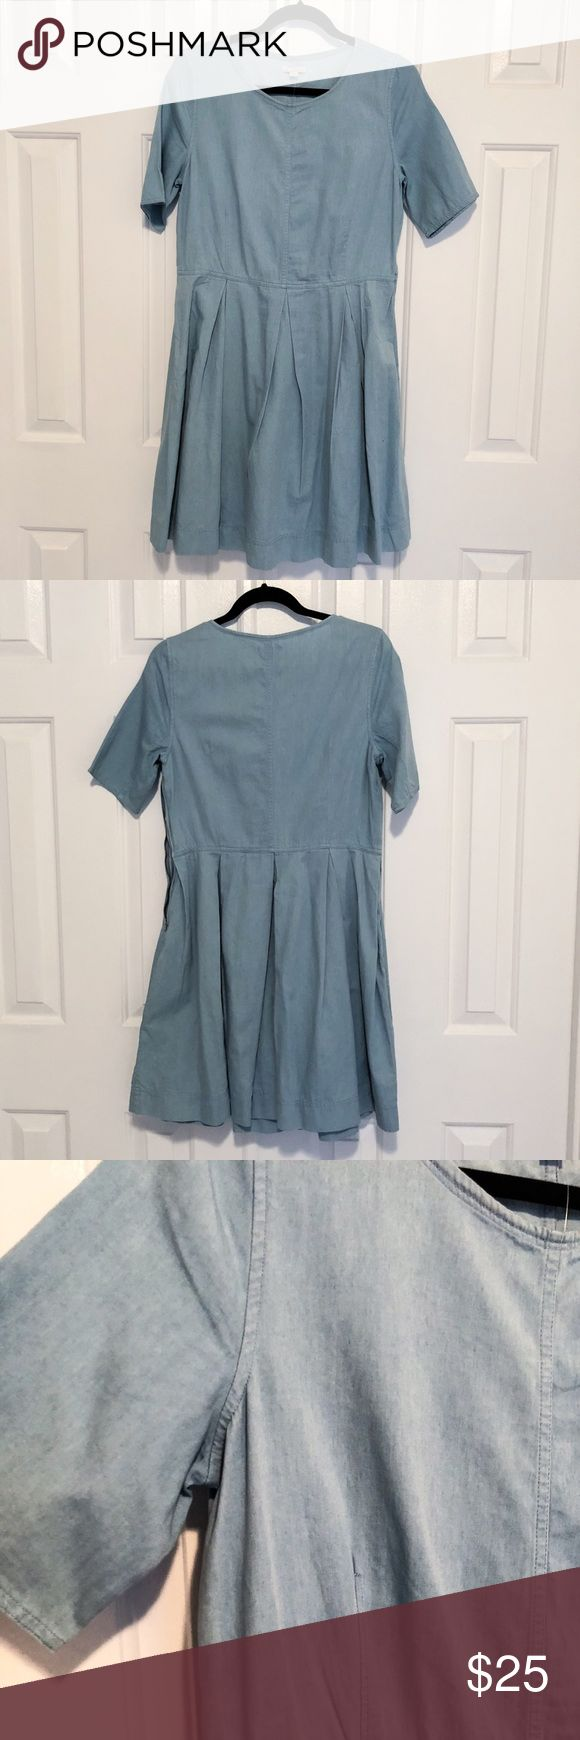 GAP Fit & Flare Chambray Pleat Dress with Pockets! It has pockets, LOVE dresses with pockets! I'm upset I never got to wear this one...super cute for the spring/summer.  The larger your bust size, the waist would fall slightly above the natural waist hiding any belly bulge. This is definitely cuter on than pictured on the model!  Side zipper Short sleeves Pleated skirt Pockets GAP Dresses